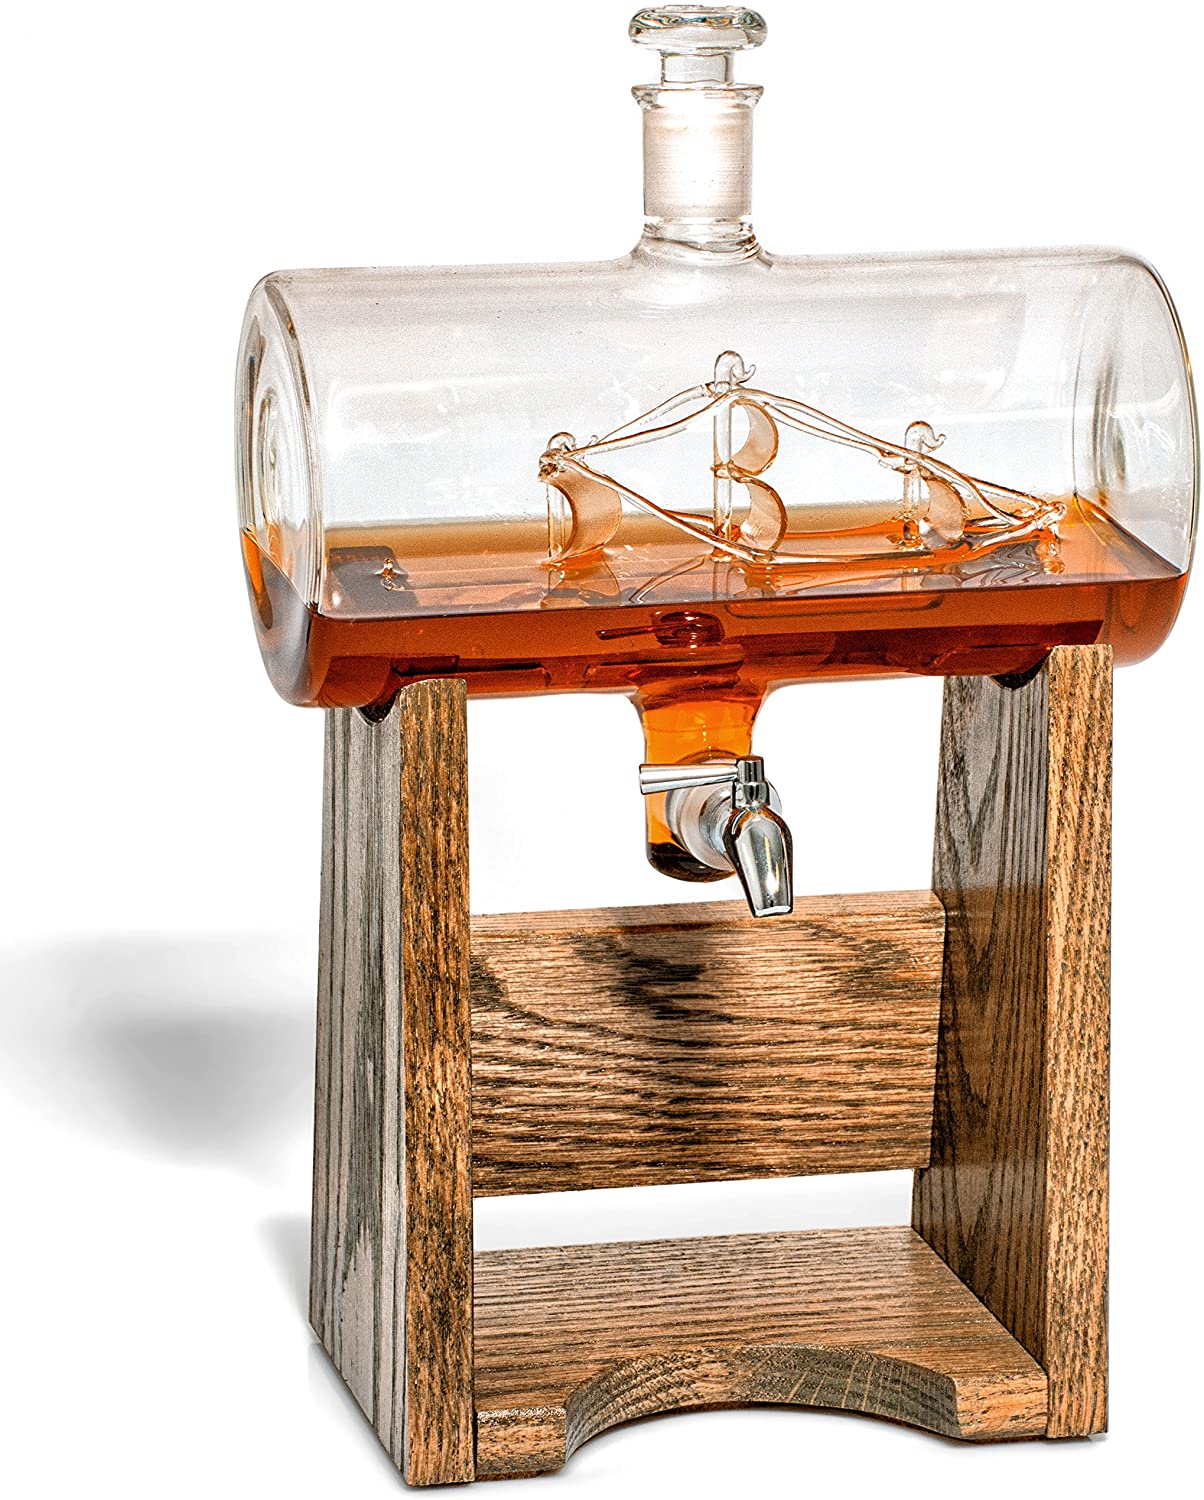 gifts-for-boaters-decanter